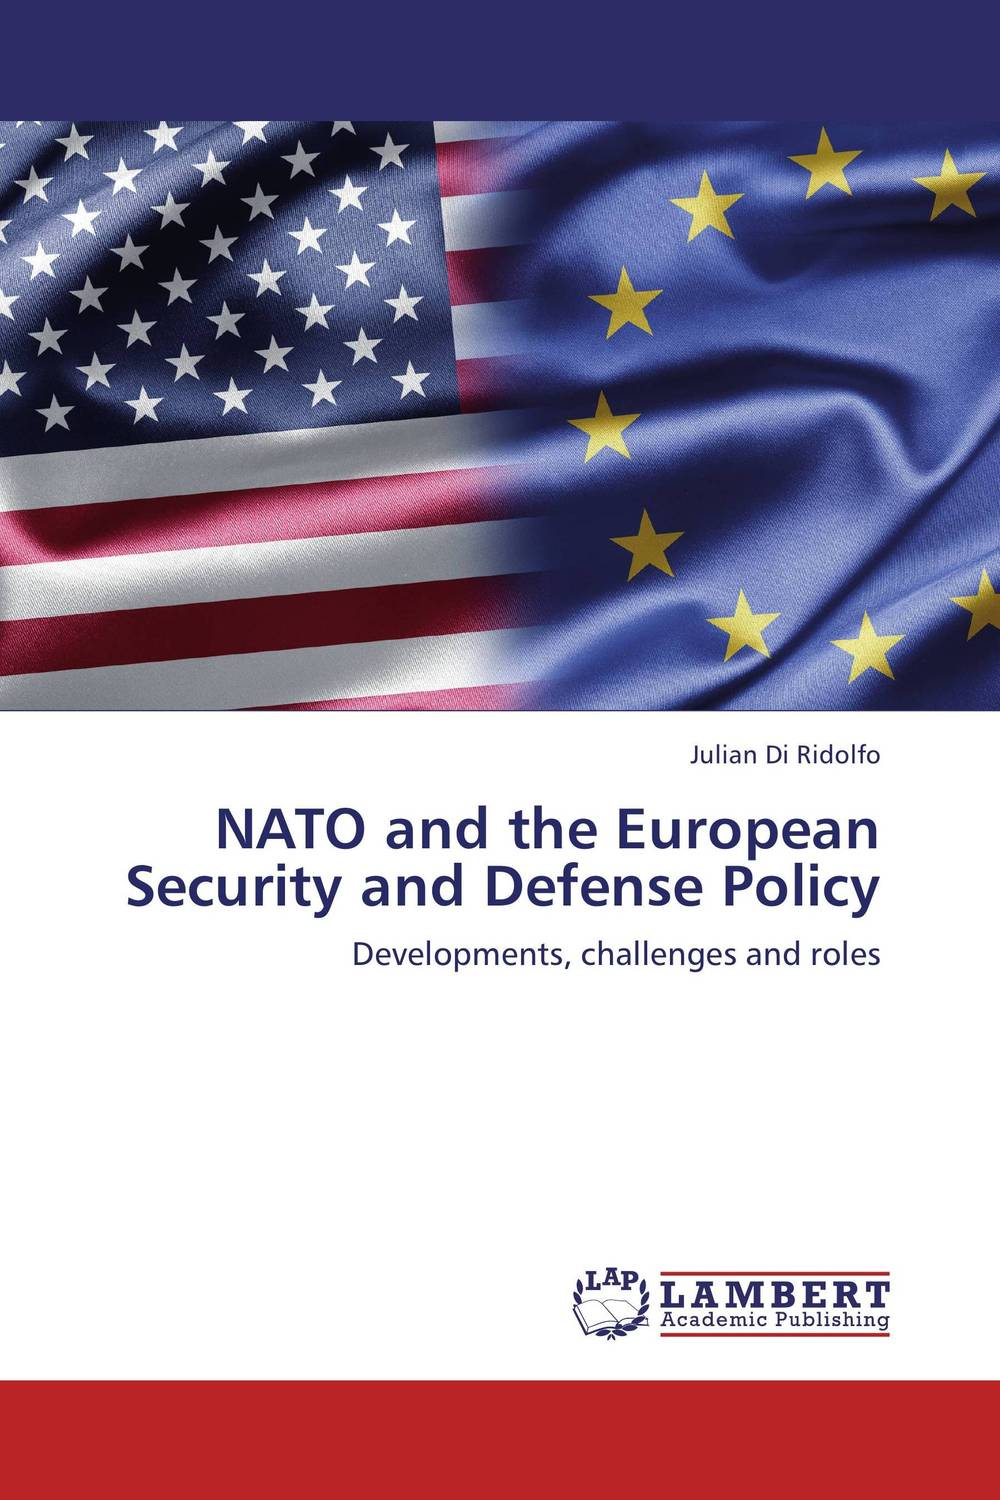 NATO and the European Security and Defense Policy